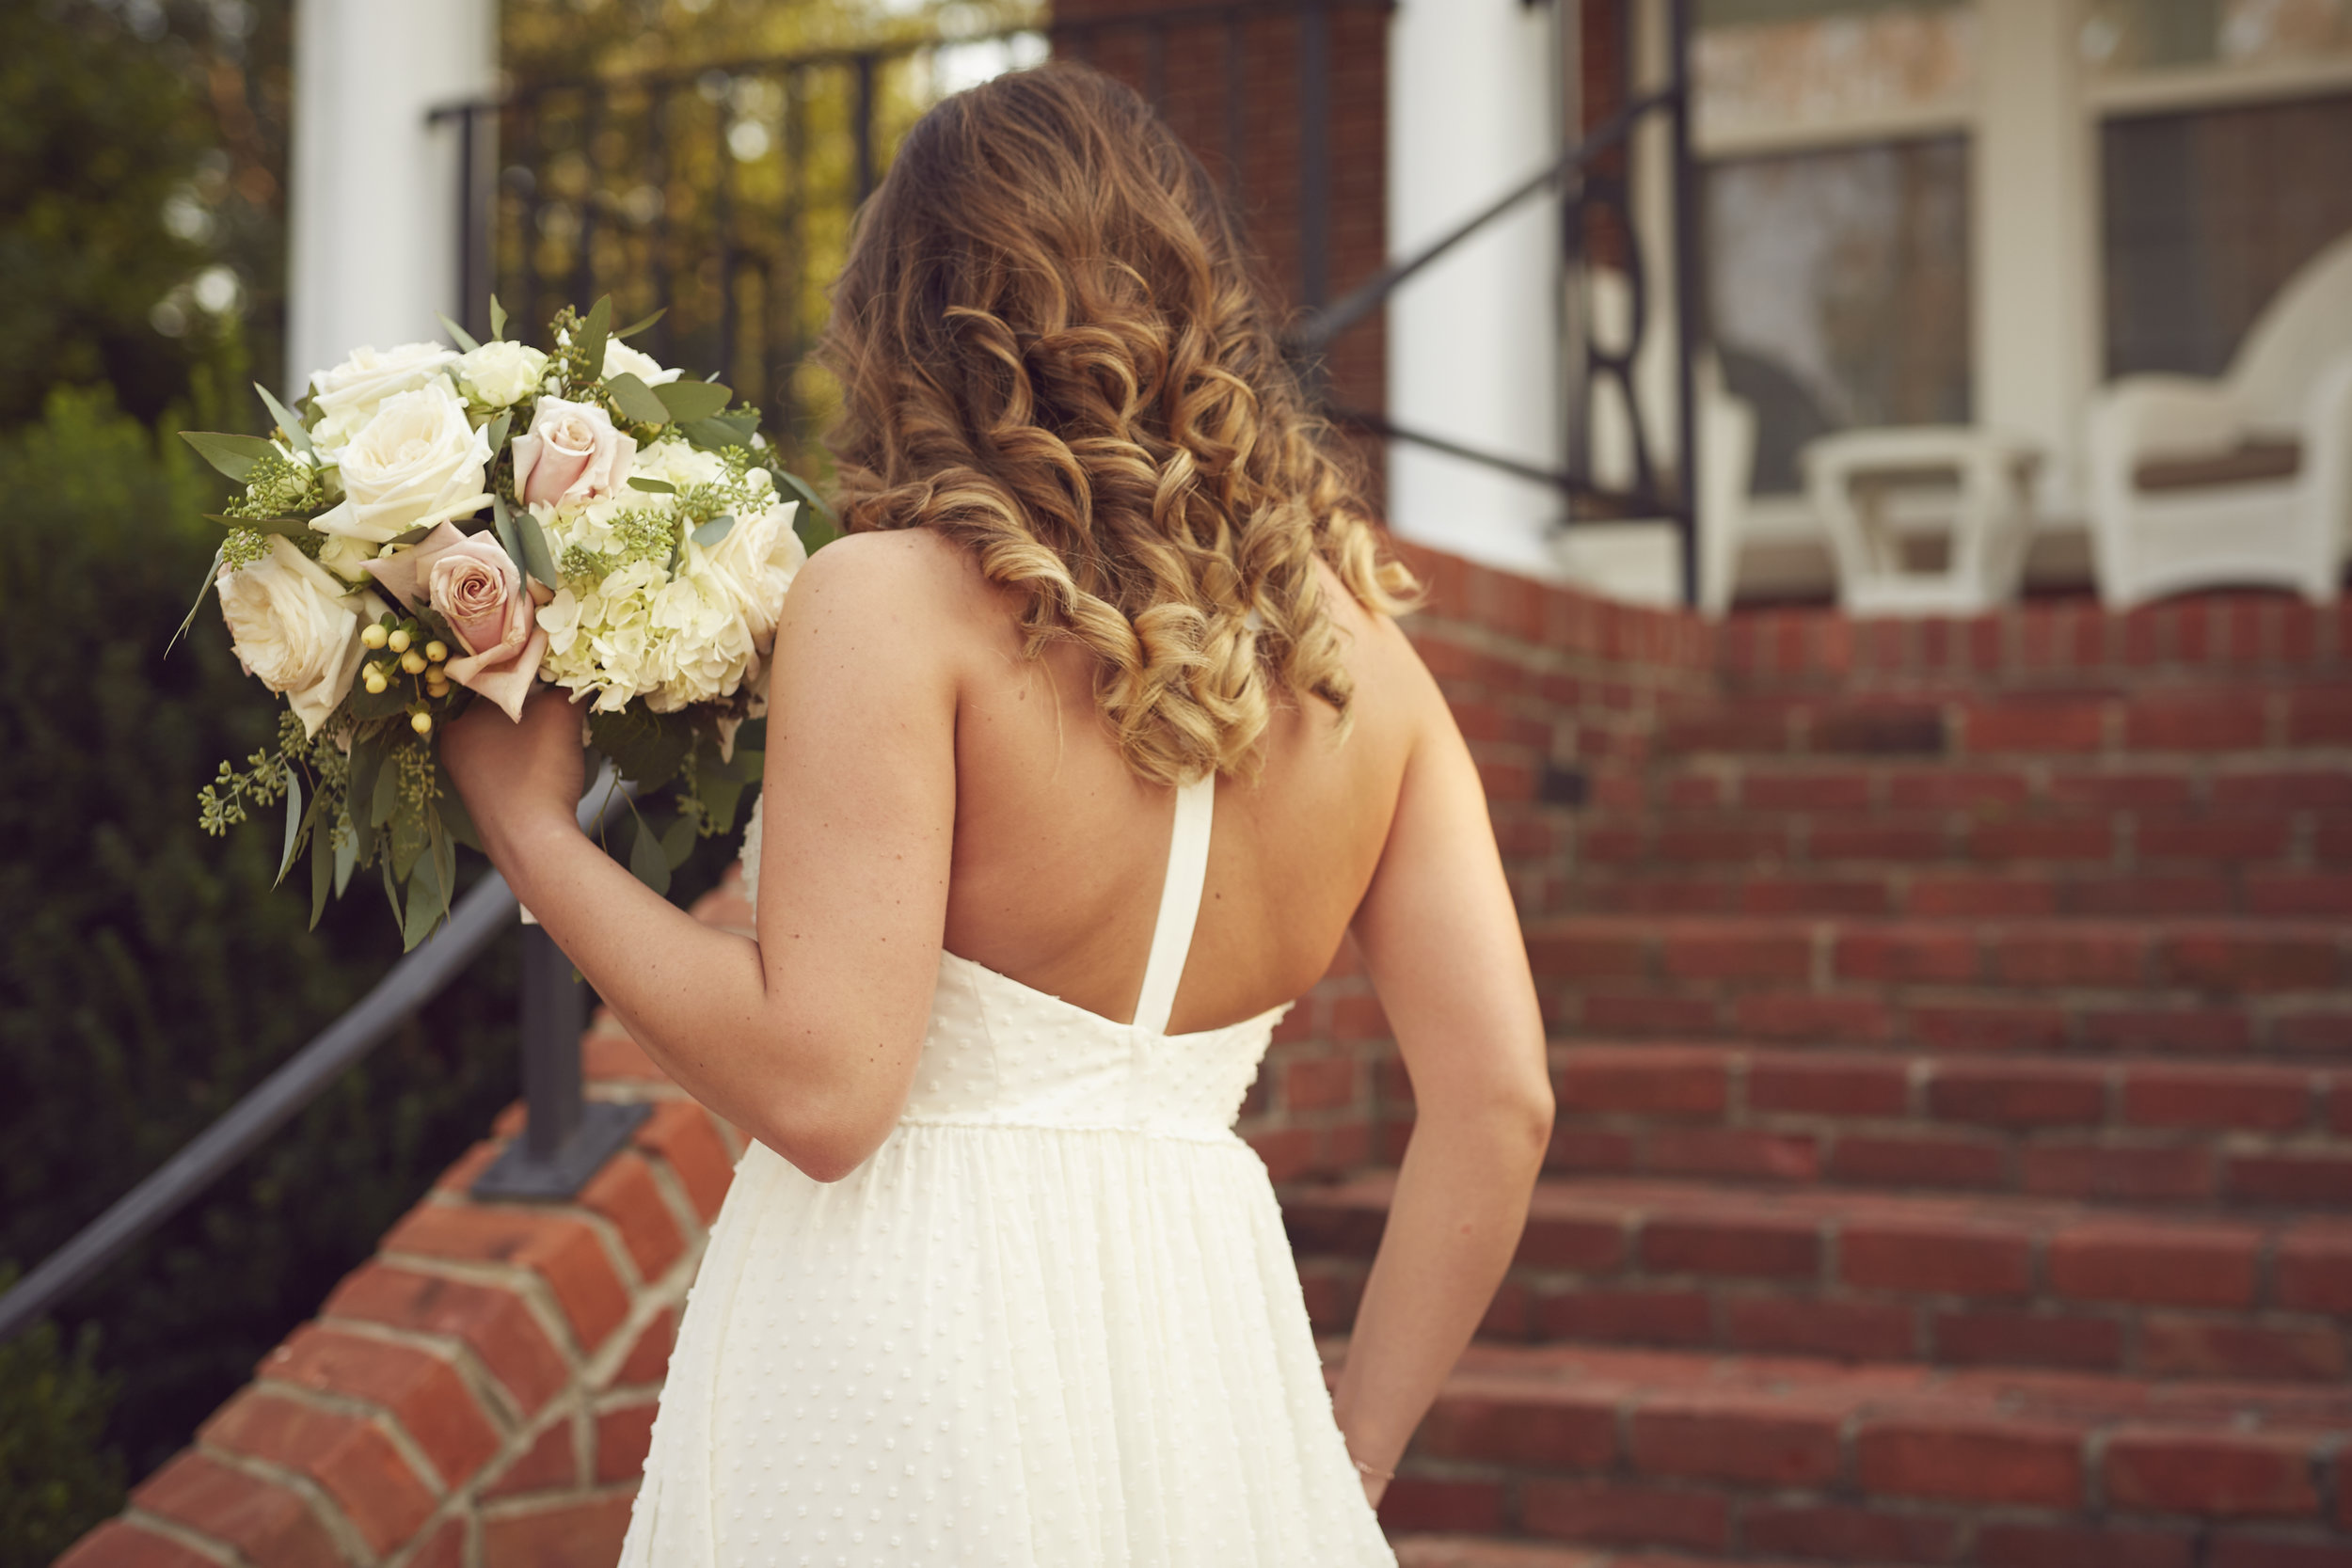 Paducah Kentucky bride with bouquet